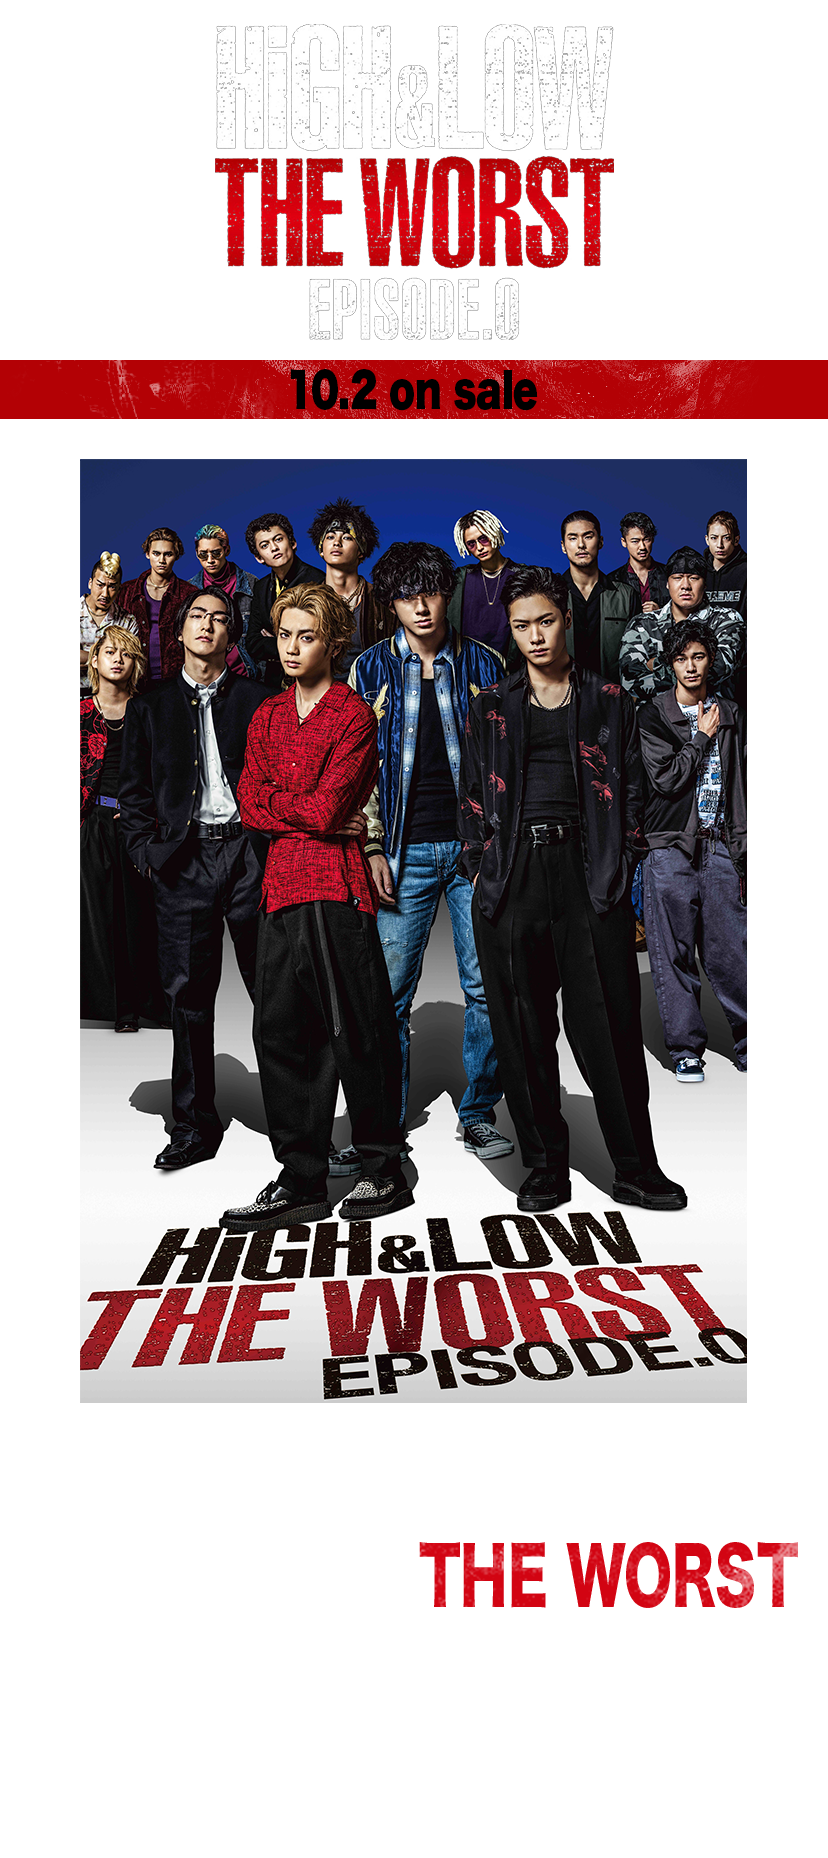 HiGH & LOW THE WORST EPISODE.0 10.2 on sale シリーズ最新ドラマ「HiGH&LOW THE WORST EPISODE.0」が超最速でDVD/Blu-ray化決定!